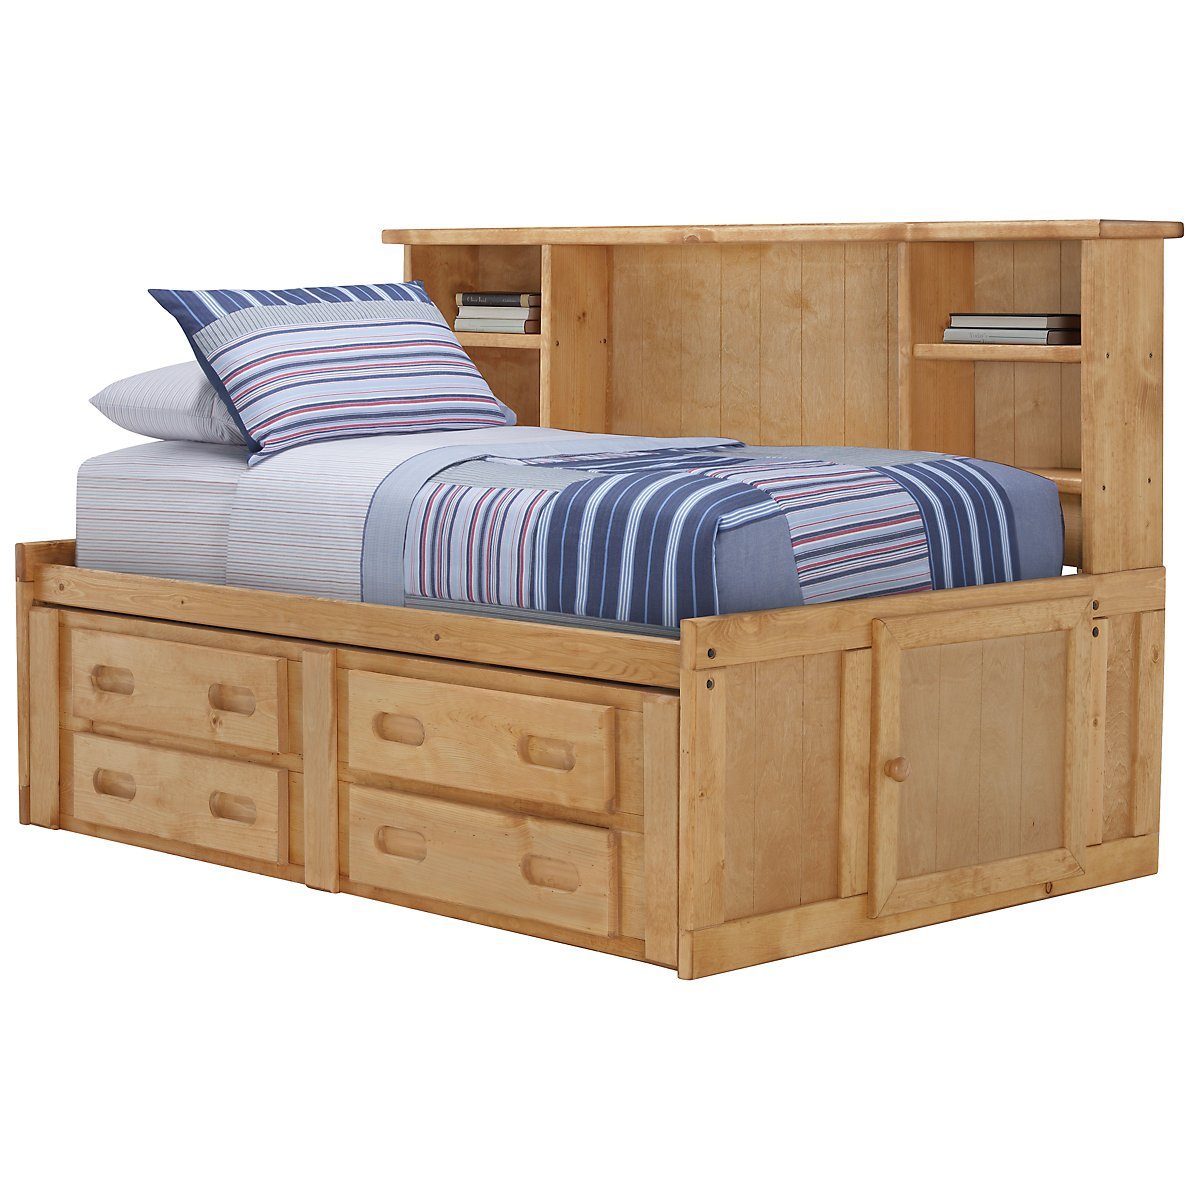 Day beds for teenagers - Cinnamon Mid Tone Storage Bookcase Daybed